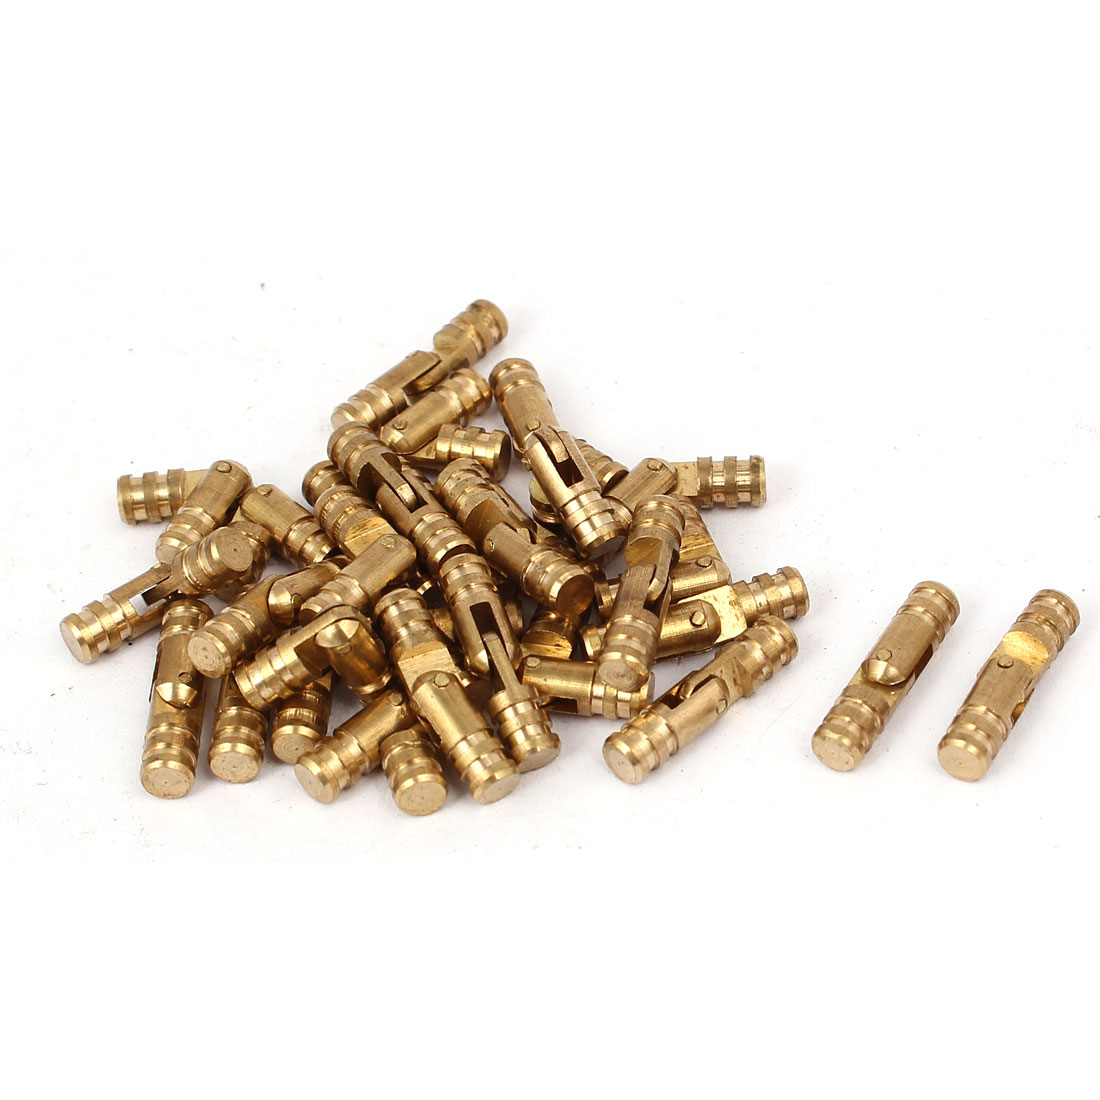 Cabinet Cylinder Folding Support Hinge Brass Tone 4mm x 17mm 30pcs